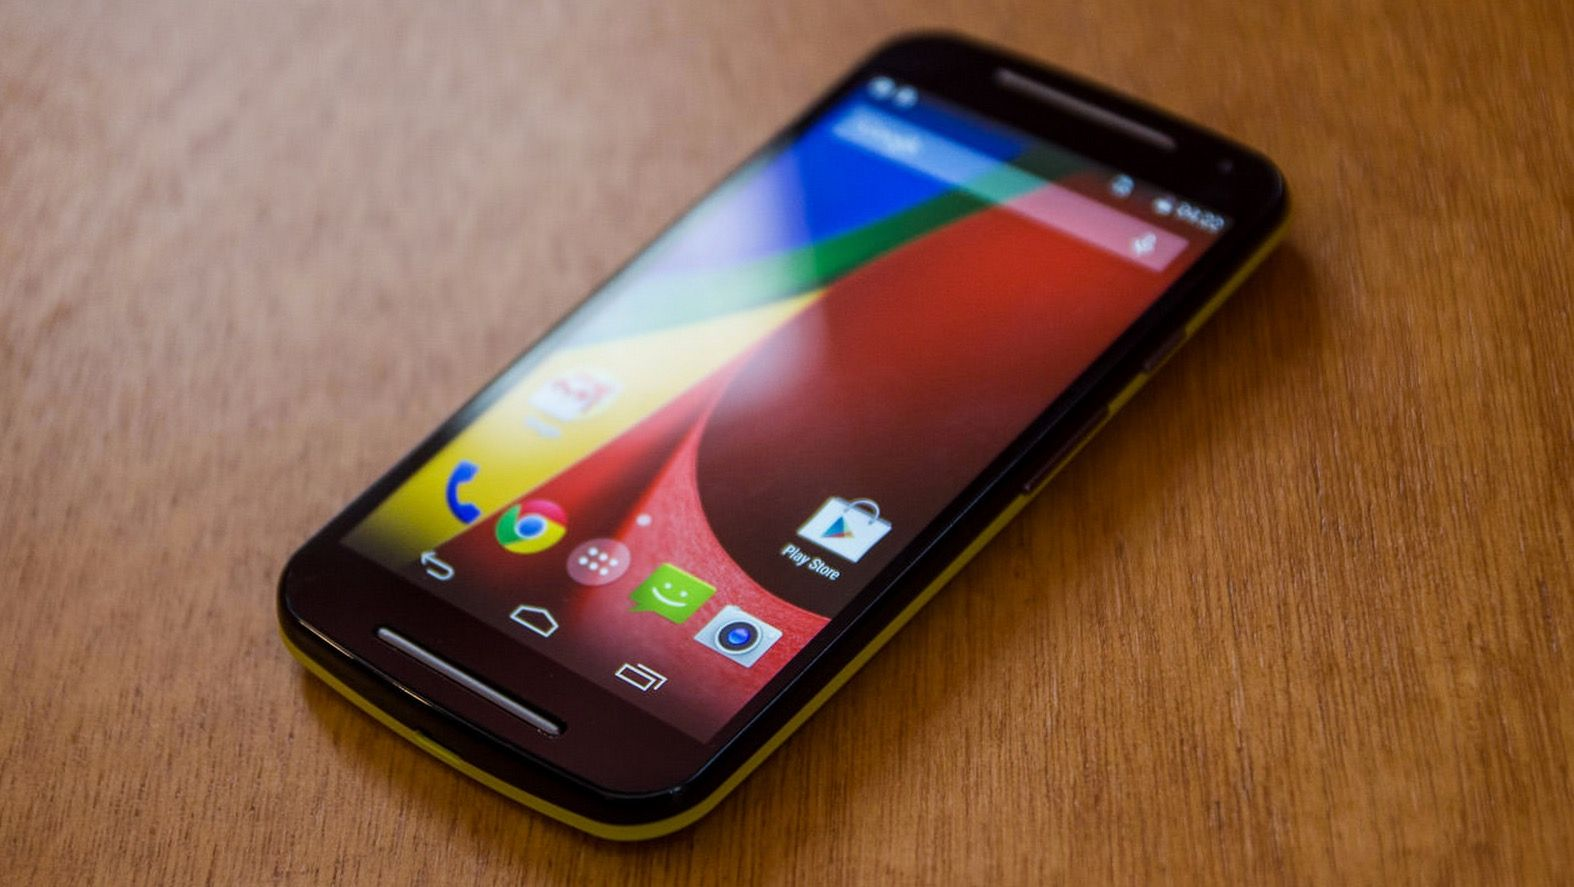 Moto G 2 oferta flash amazon